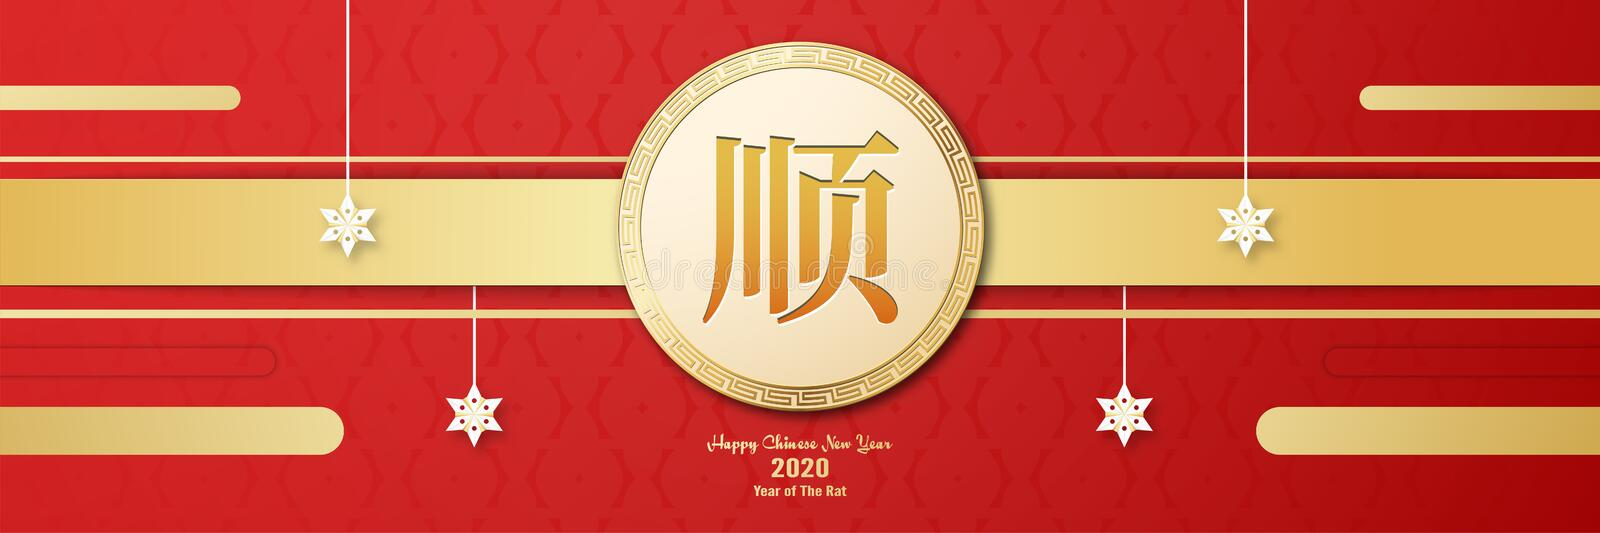 Happy Chinese new year 2020, year of the rat. Template design for cover, invitation, poster, flyer, premium packaging. Vector stock illustration